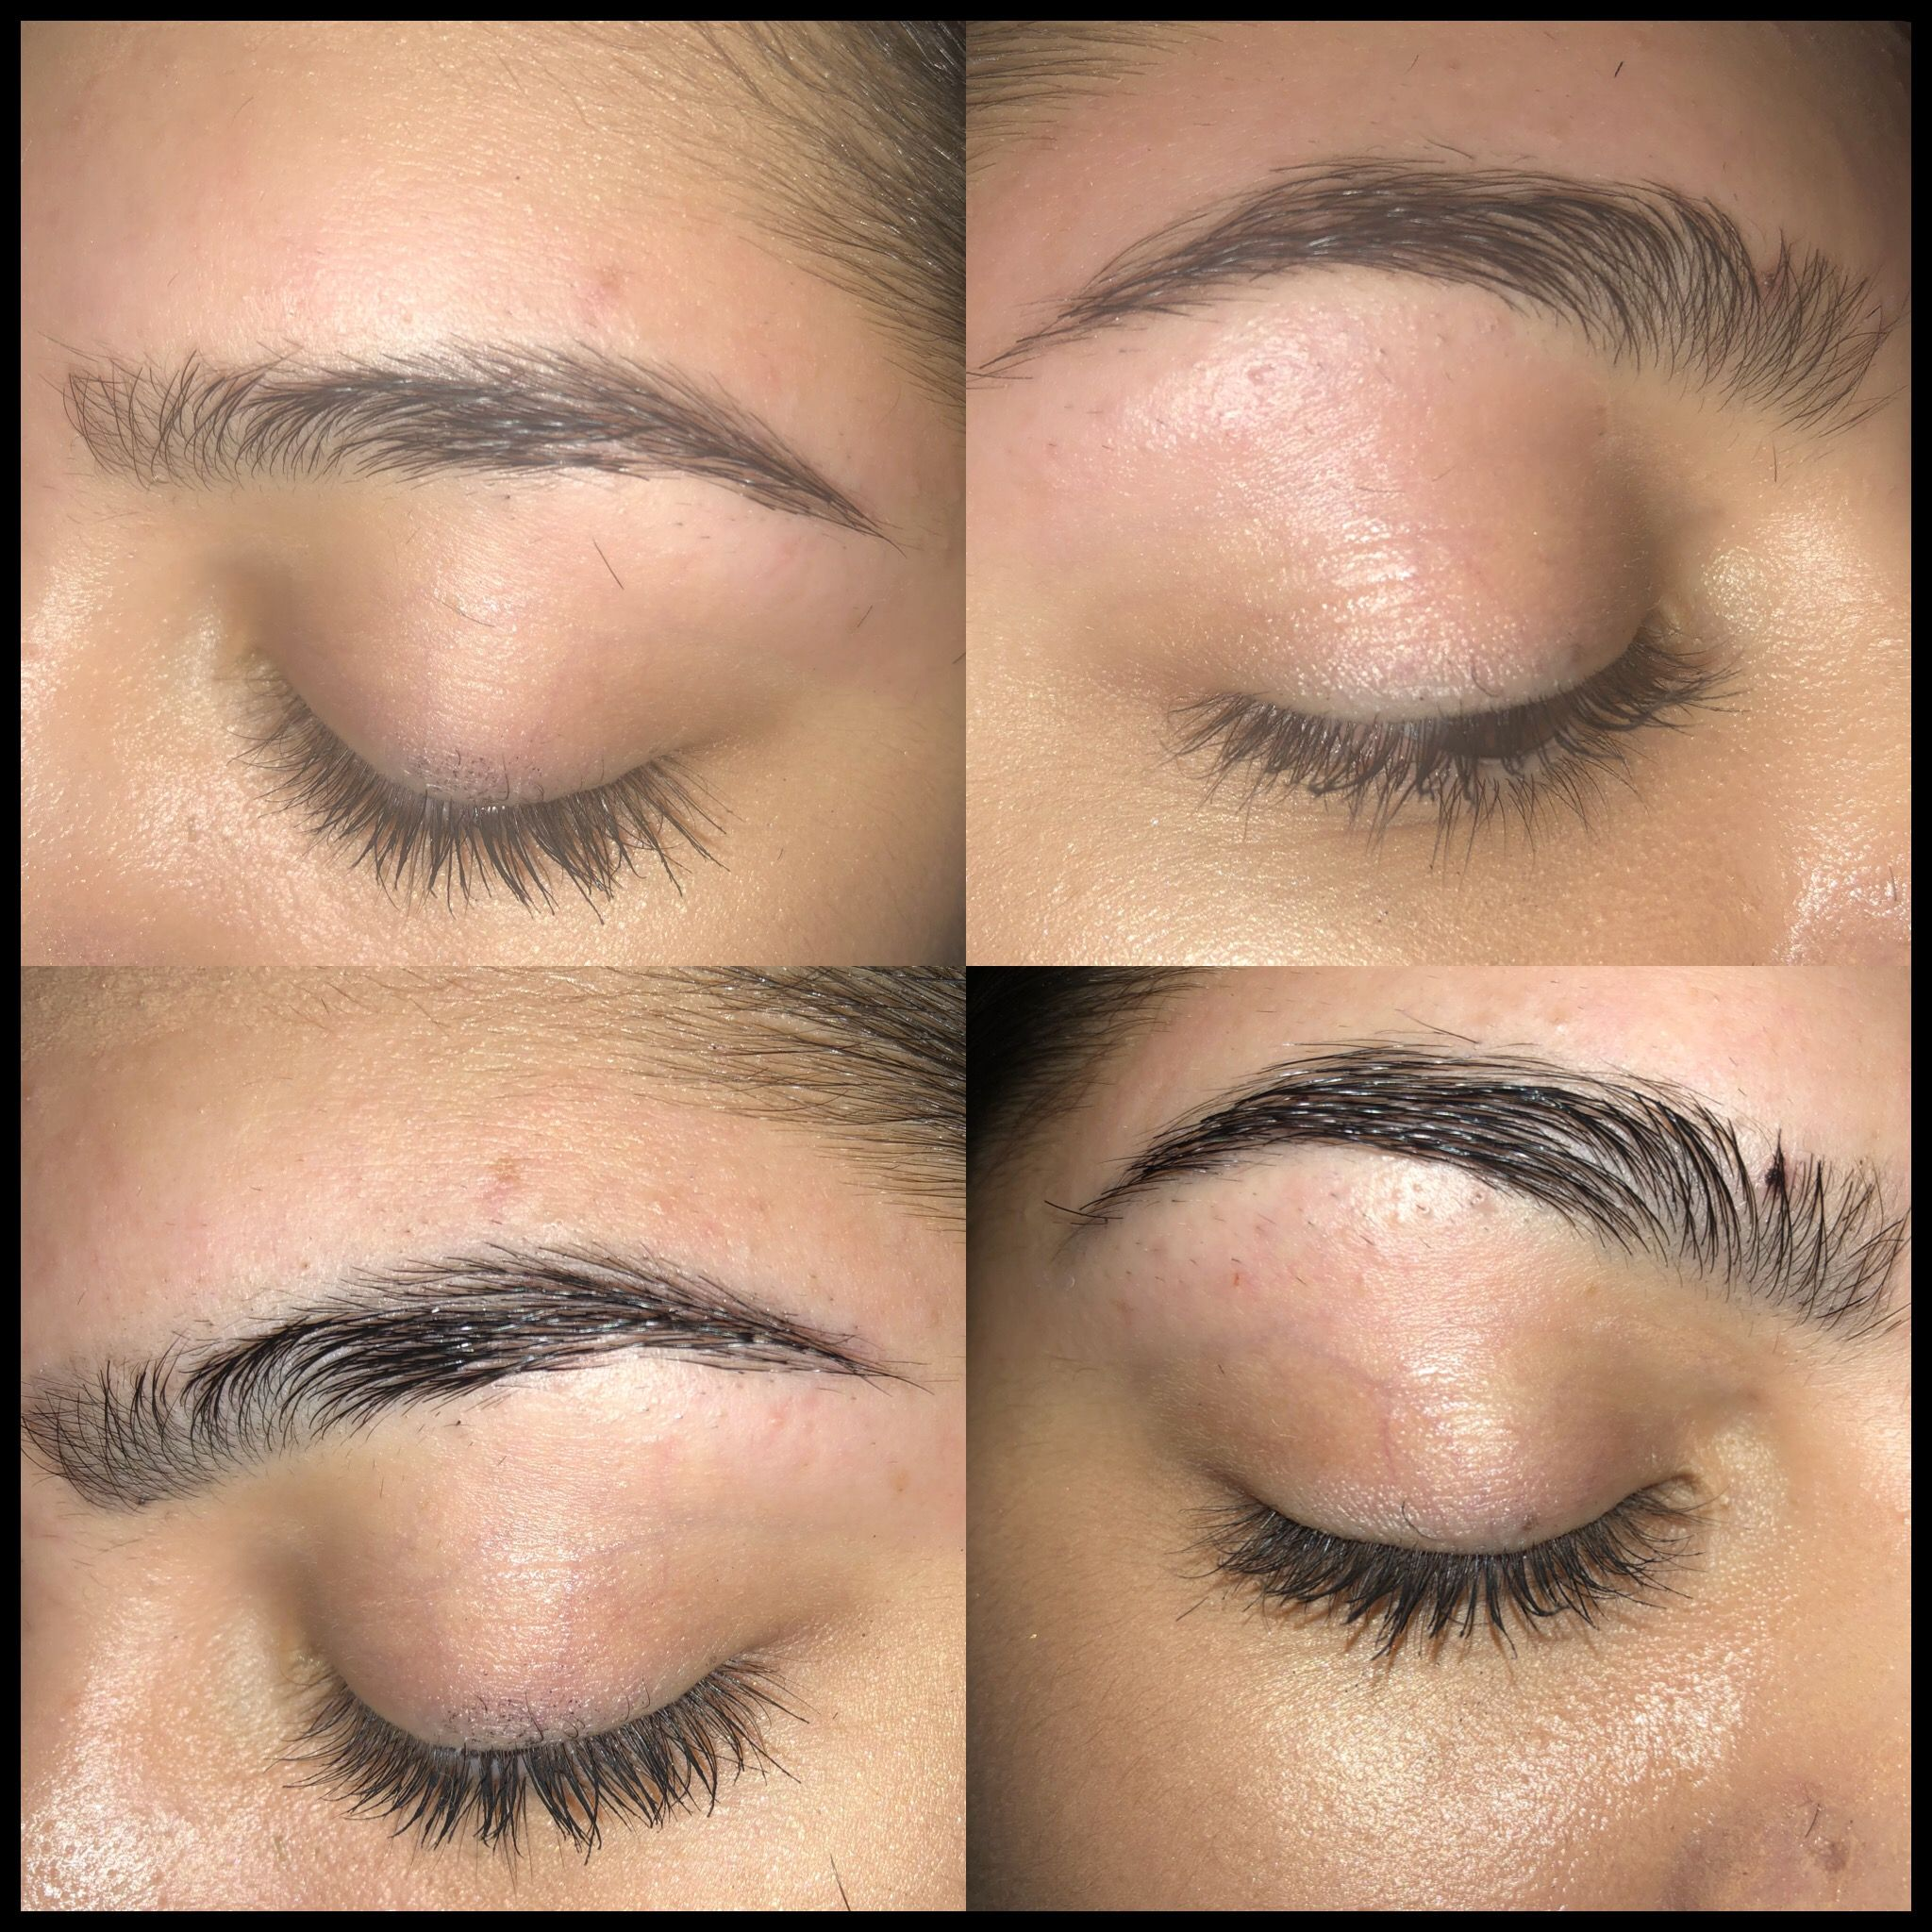 Pin by Cosmetic Renee on Skin Therapy | Brow wax, Eyebrows, Brows